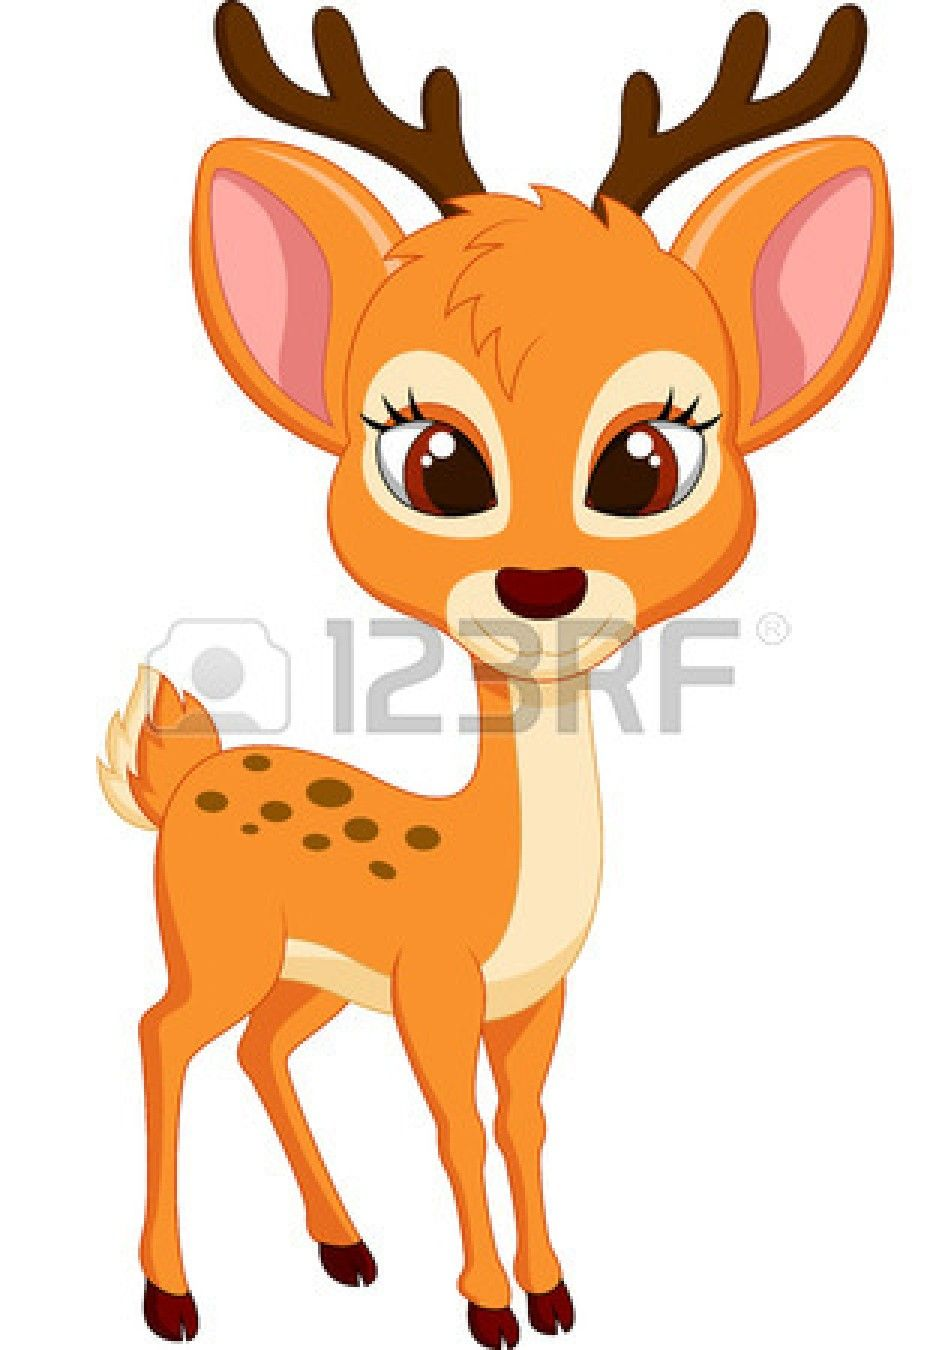 Cute Deer Cartoon Card Ideas Deer Cartoon Baby Animal Drawings